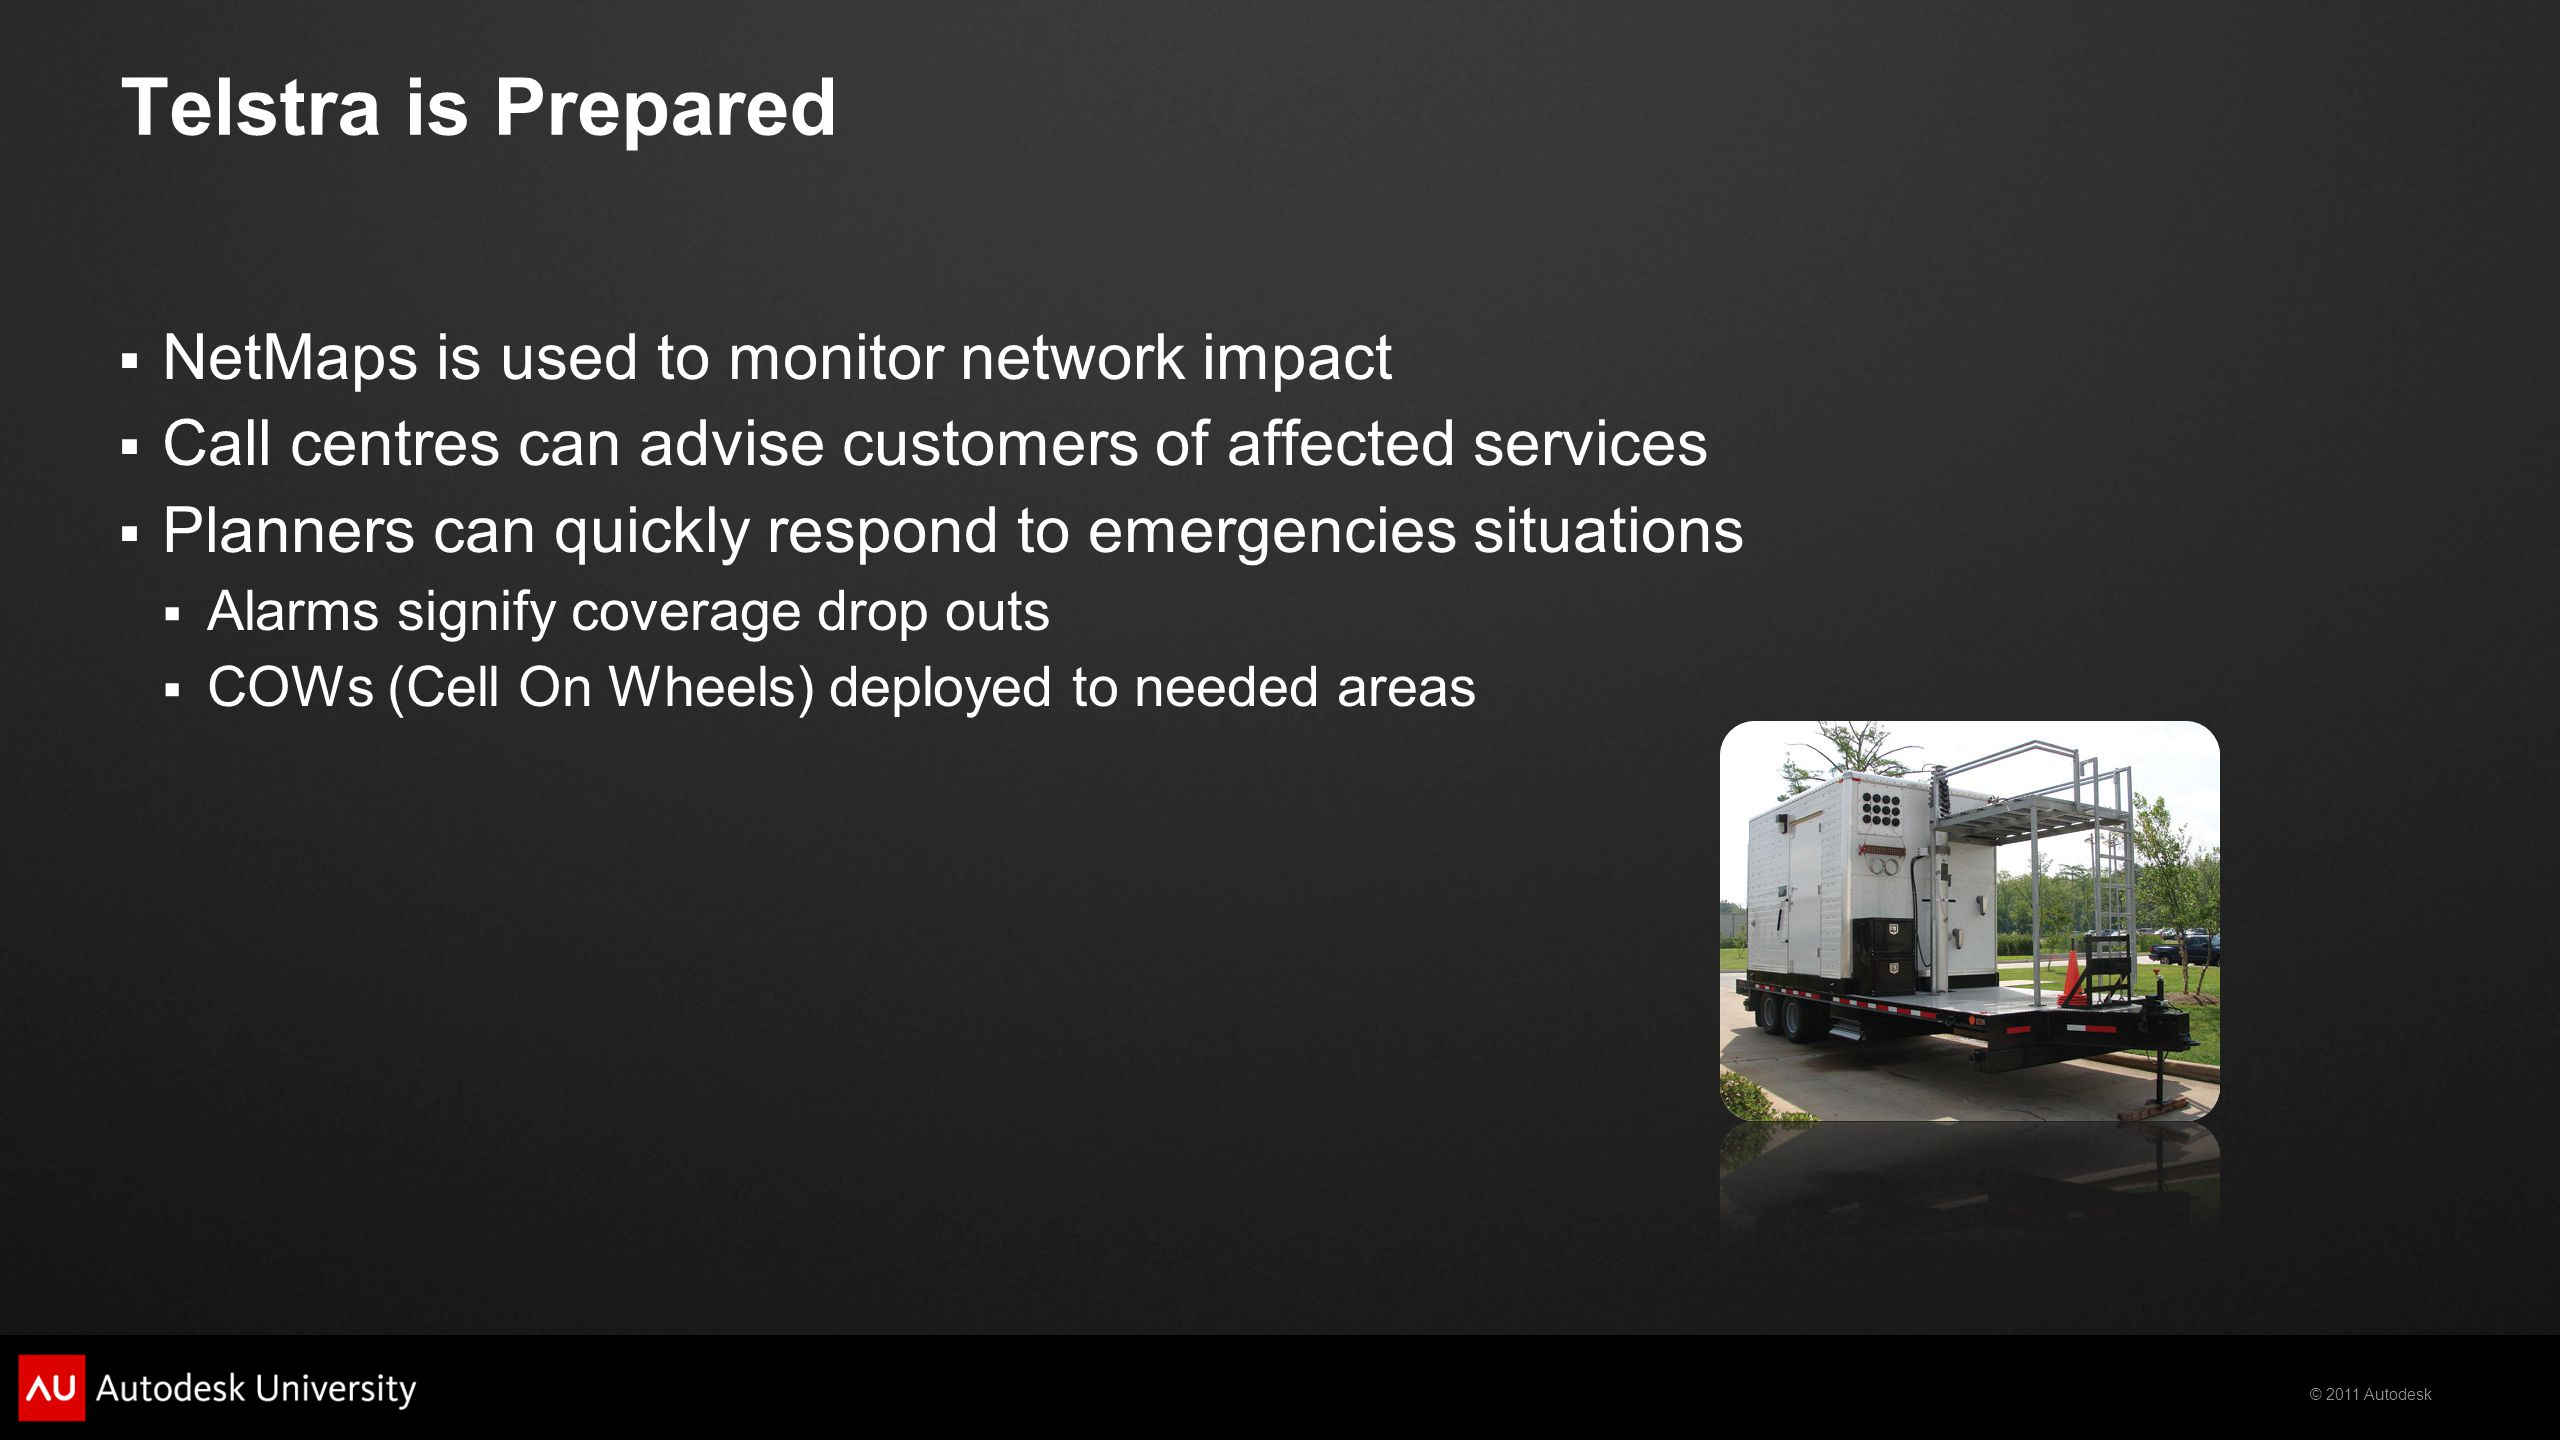 © 2011 Autodesk Telstra is Prepared  NetMaps is used to monitor network impact  Call centres can advise customers of affected services  Planners can quickly respond to emergencies situations  Alarms signify coverage drop outs  COWs (Cell On Wheels) deployed to needed areas